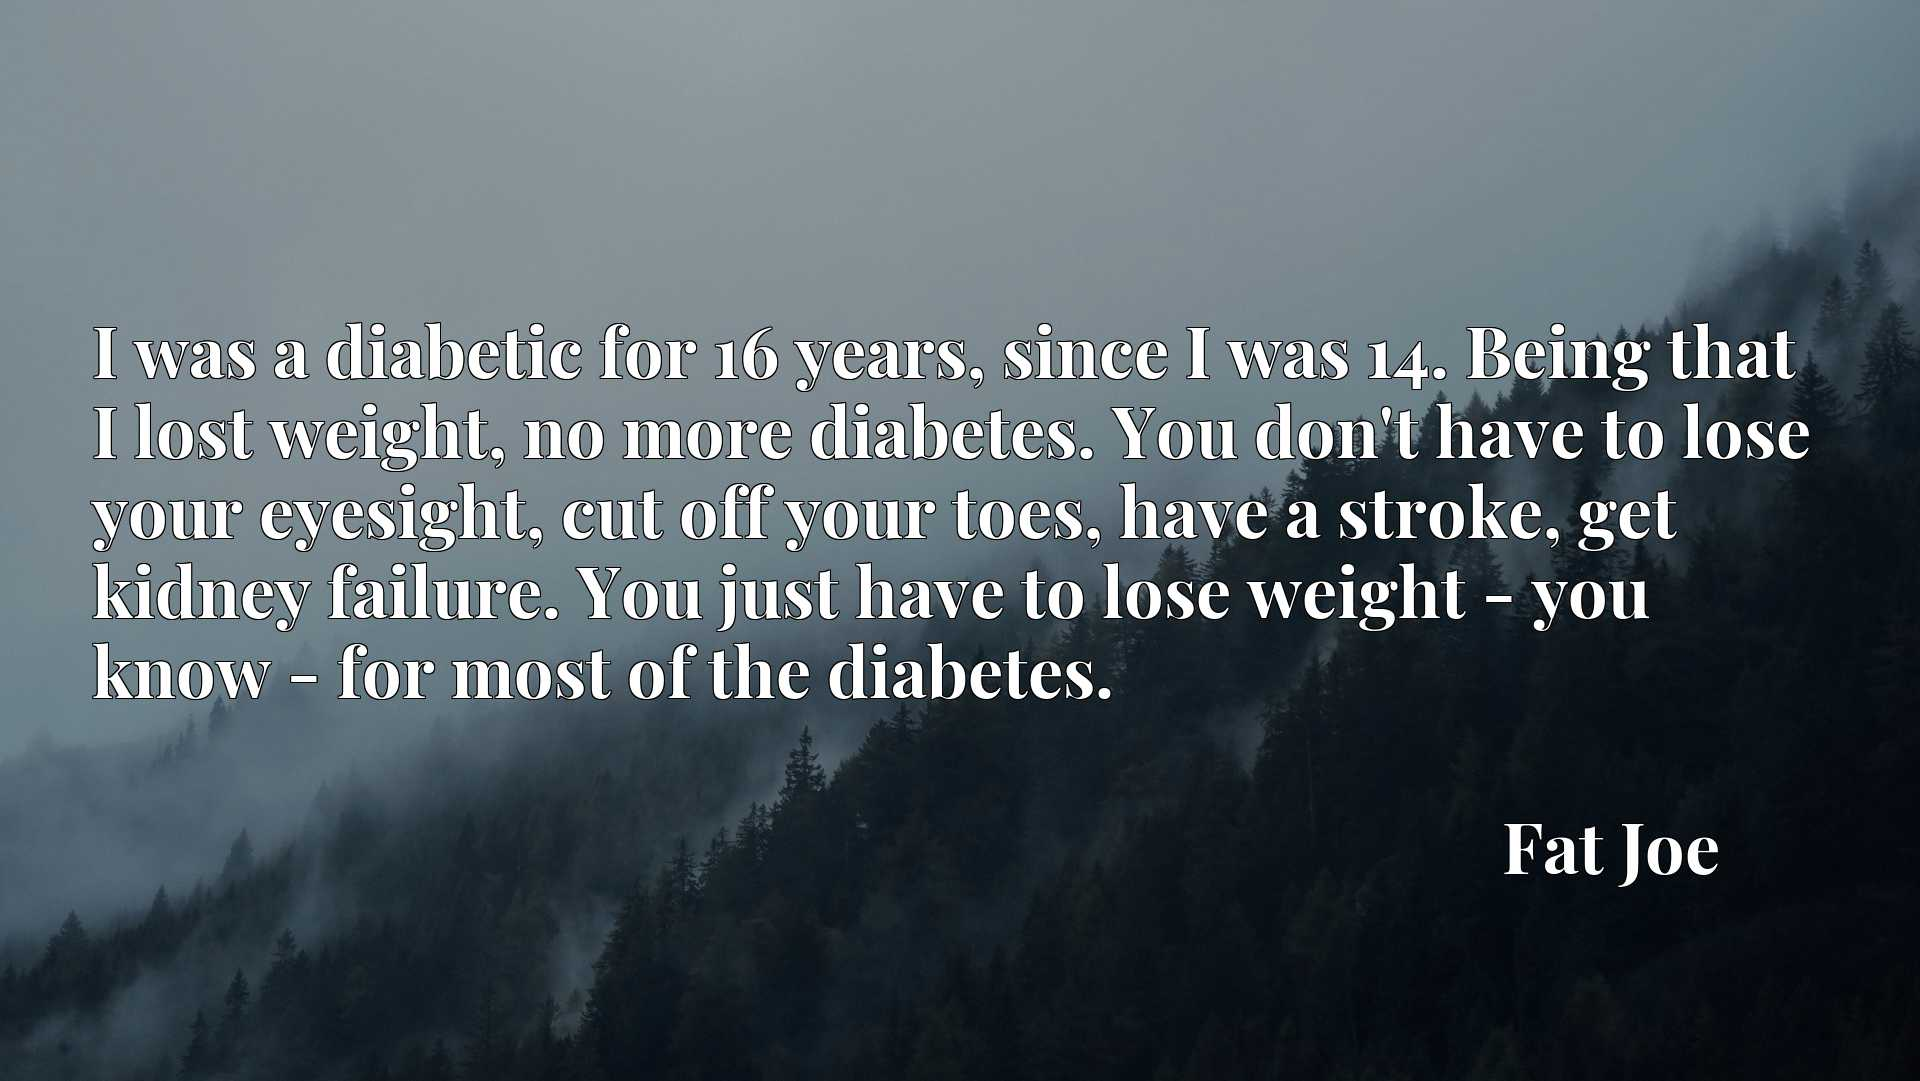 I was a diabetic for 16 years, since I was 14. Being that I lost weight, no more diabetes. You don't have to lose your eyesight, cut off your toes, have a stroke, get kidney failure. You just have to lose weight - you know - for most of the diabetes.